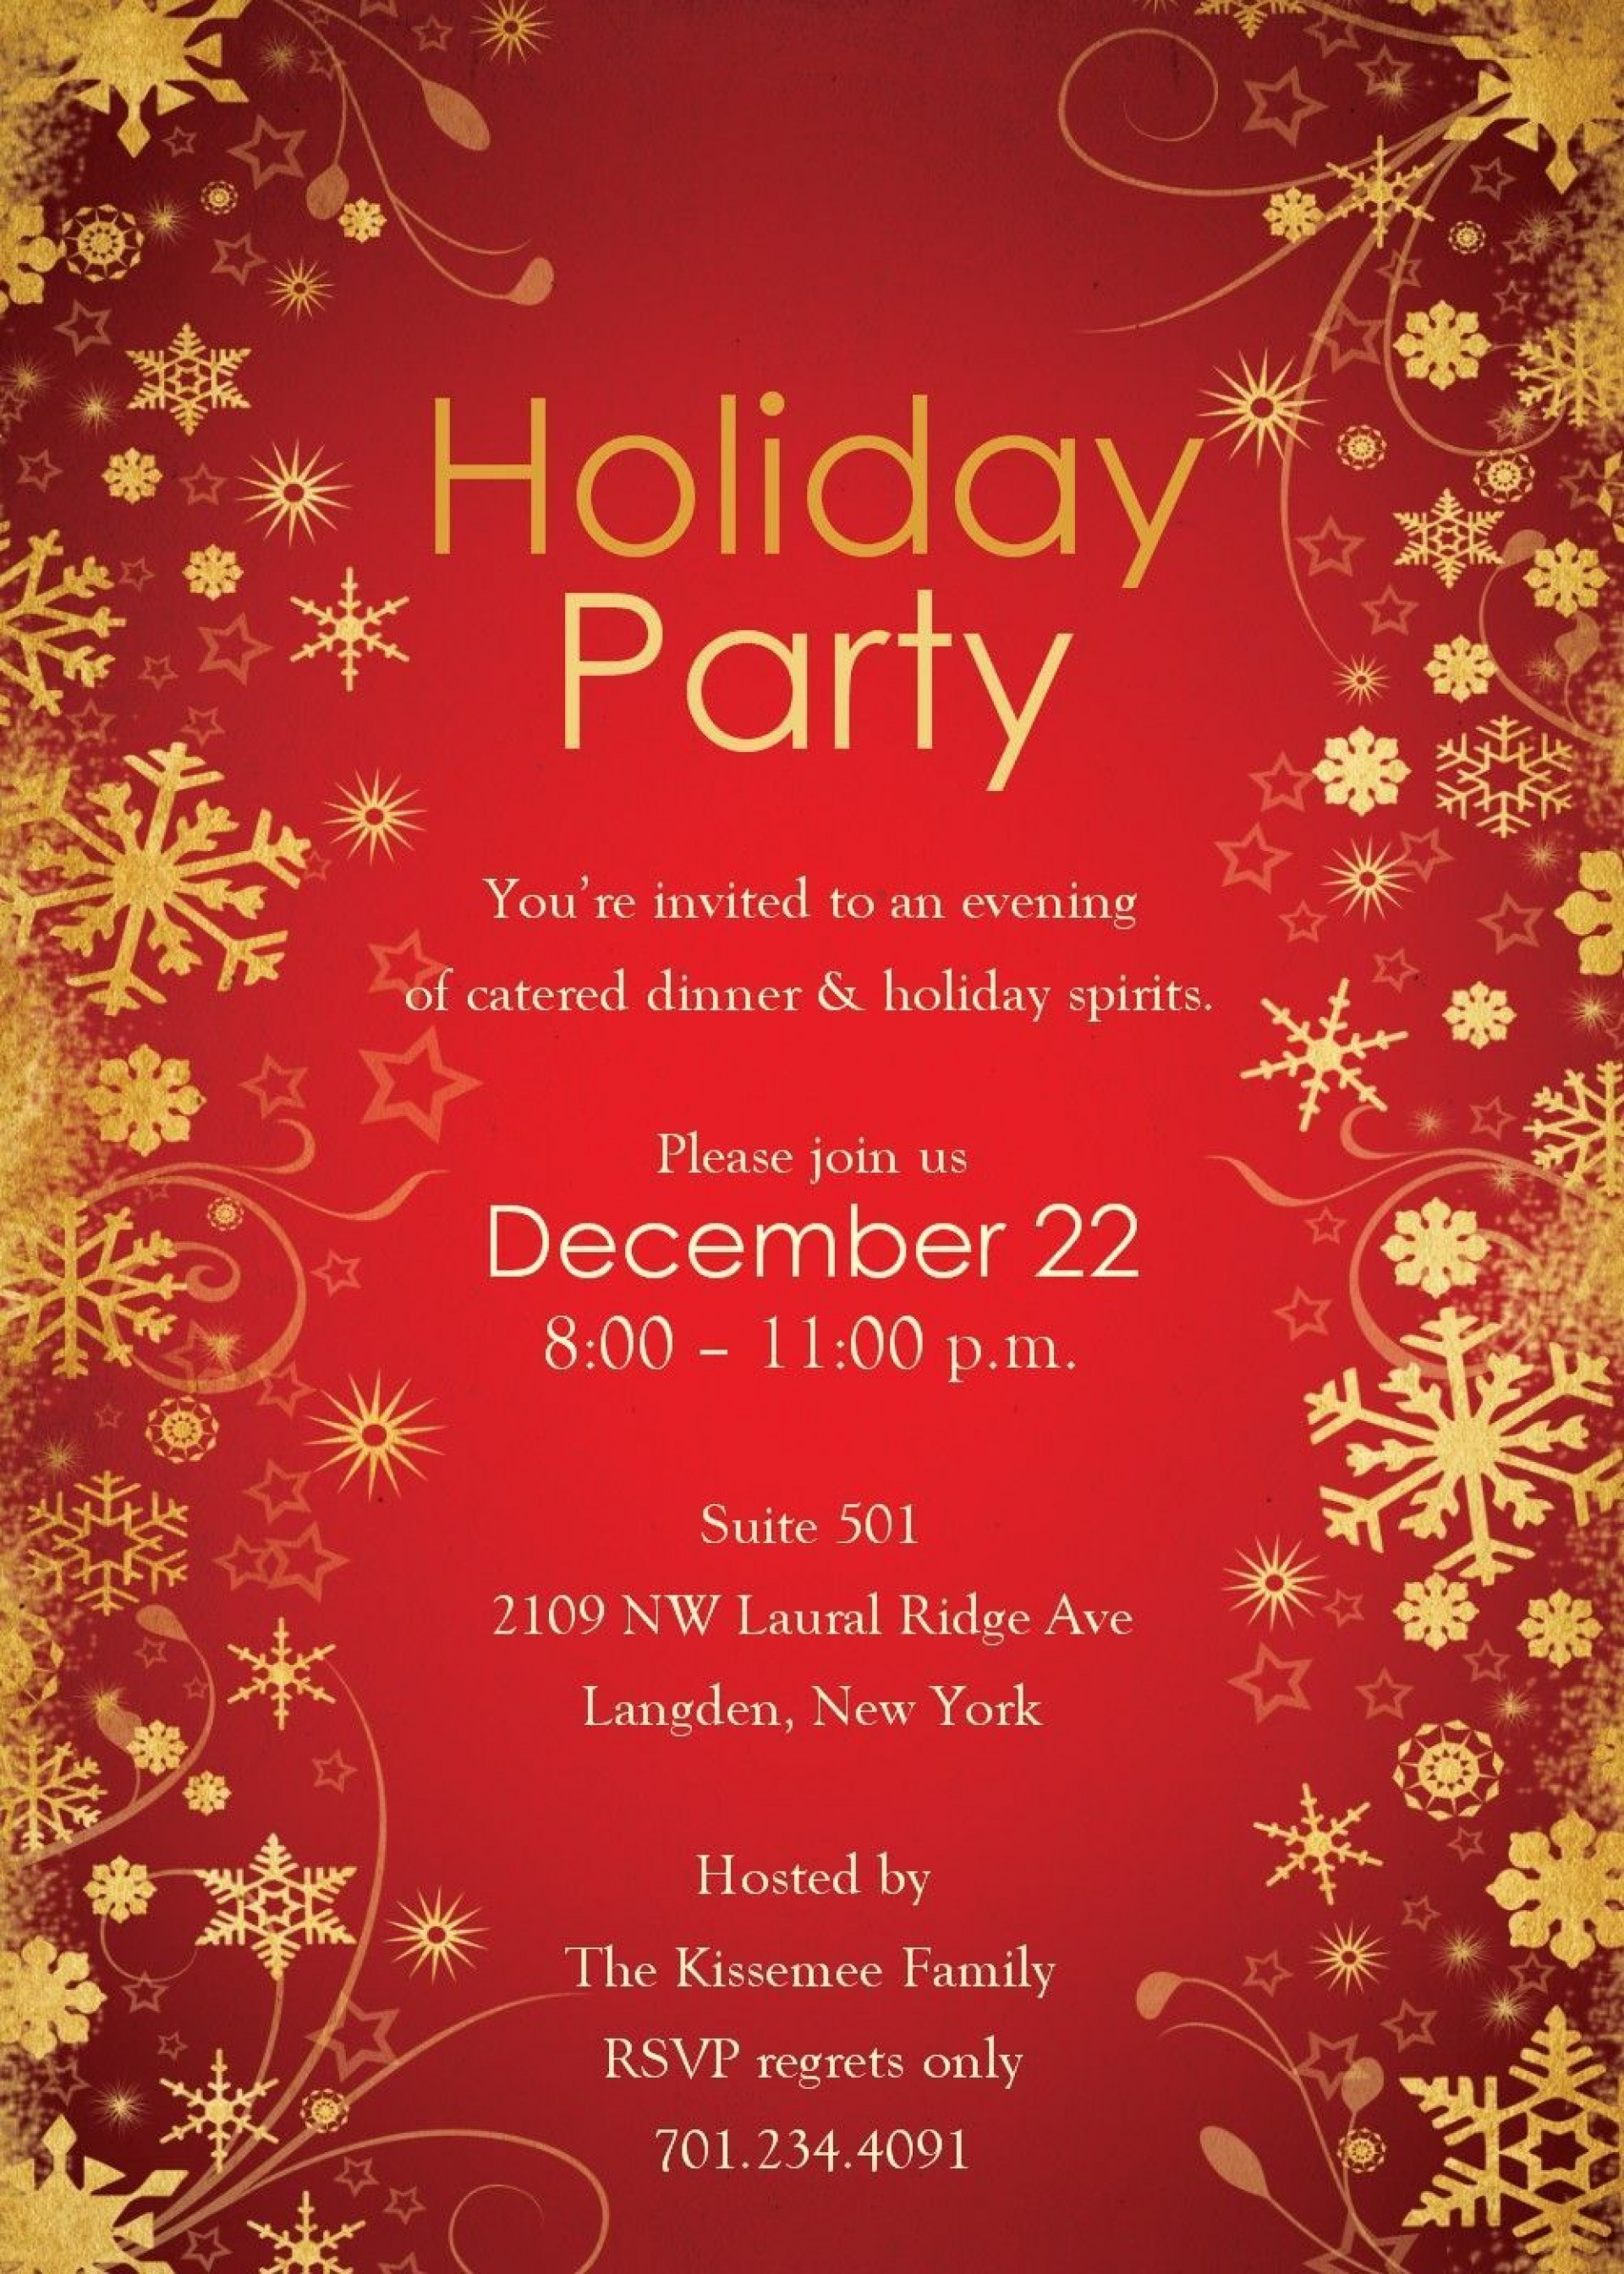 007 Excellent Free Holiday Invitation Template Idea  Online Party Christma1920